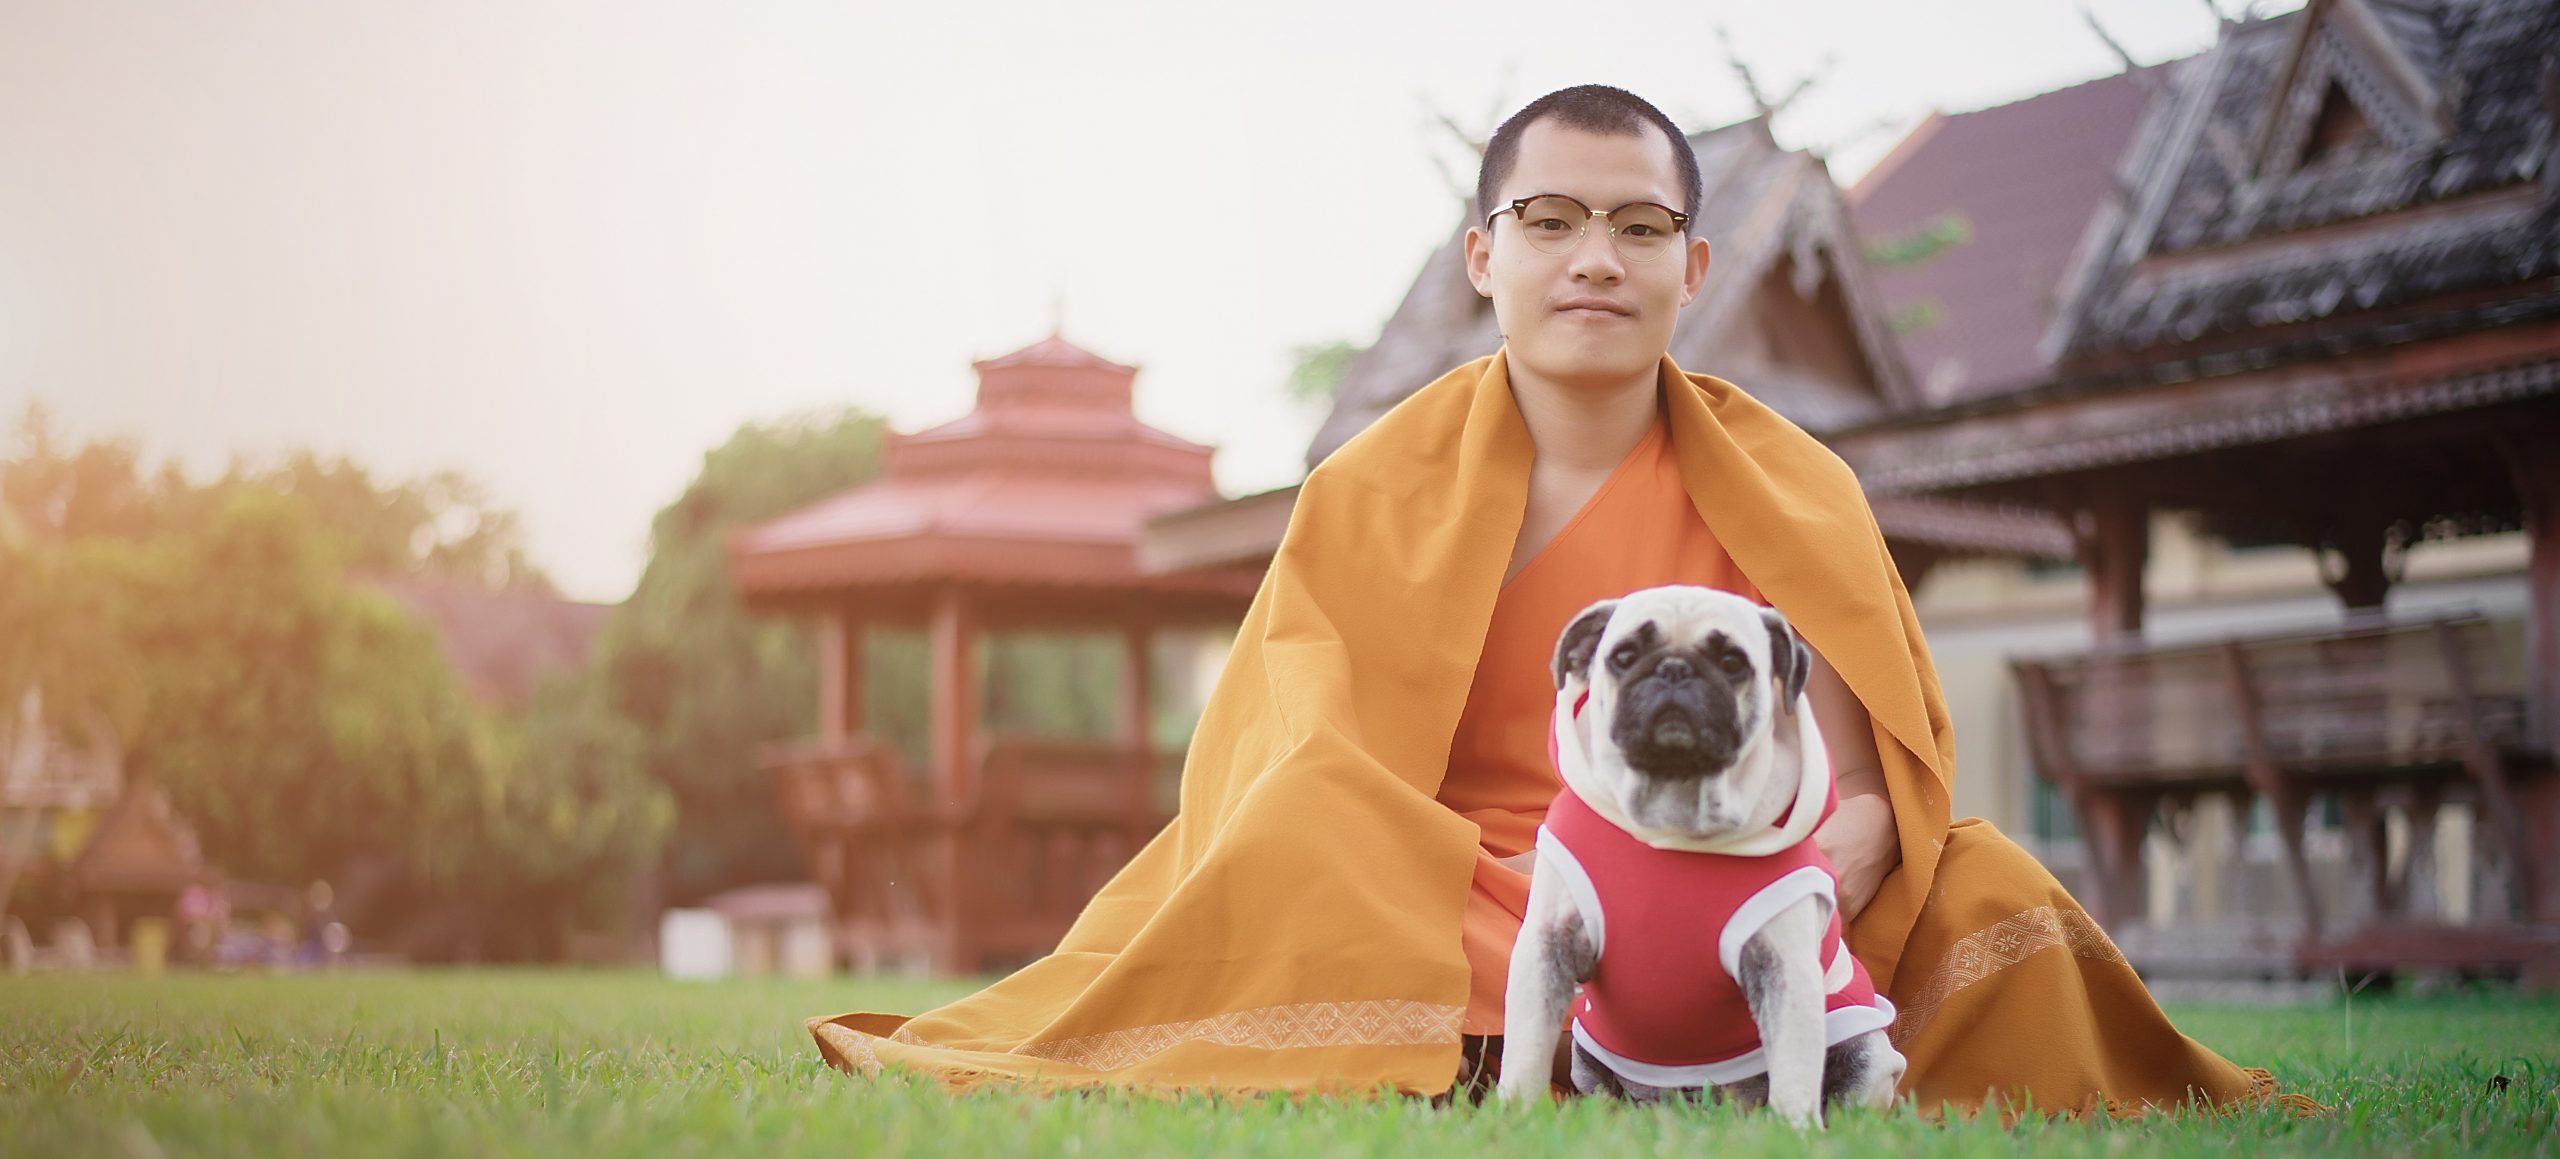 Monk with Pug